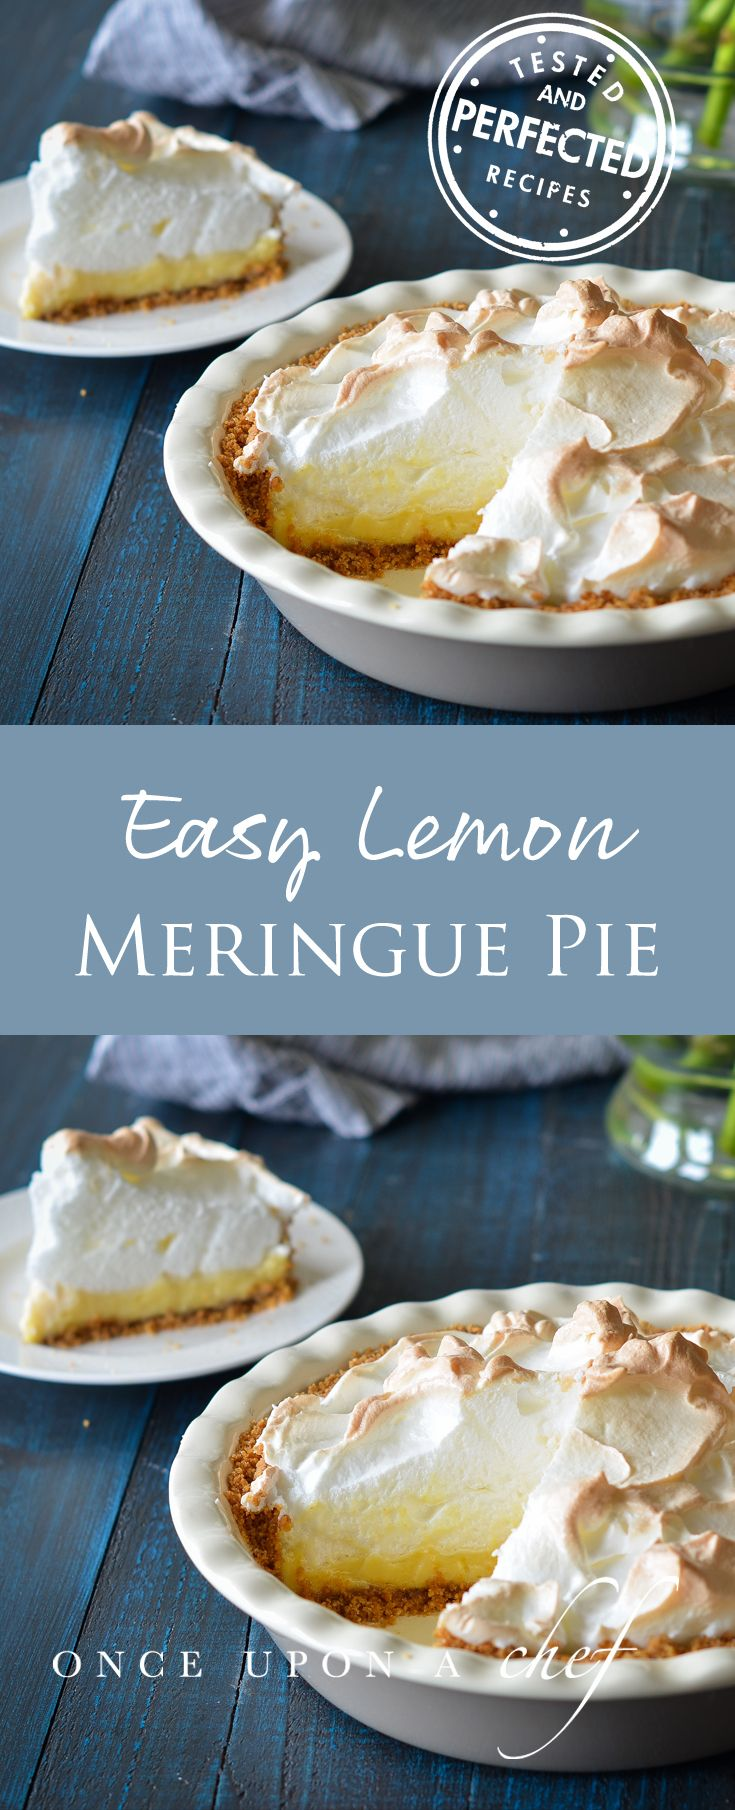 Easy Lemon Meringue Pie #lemonmeringuecheesecake